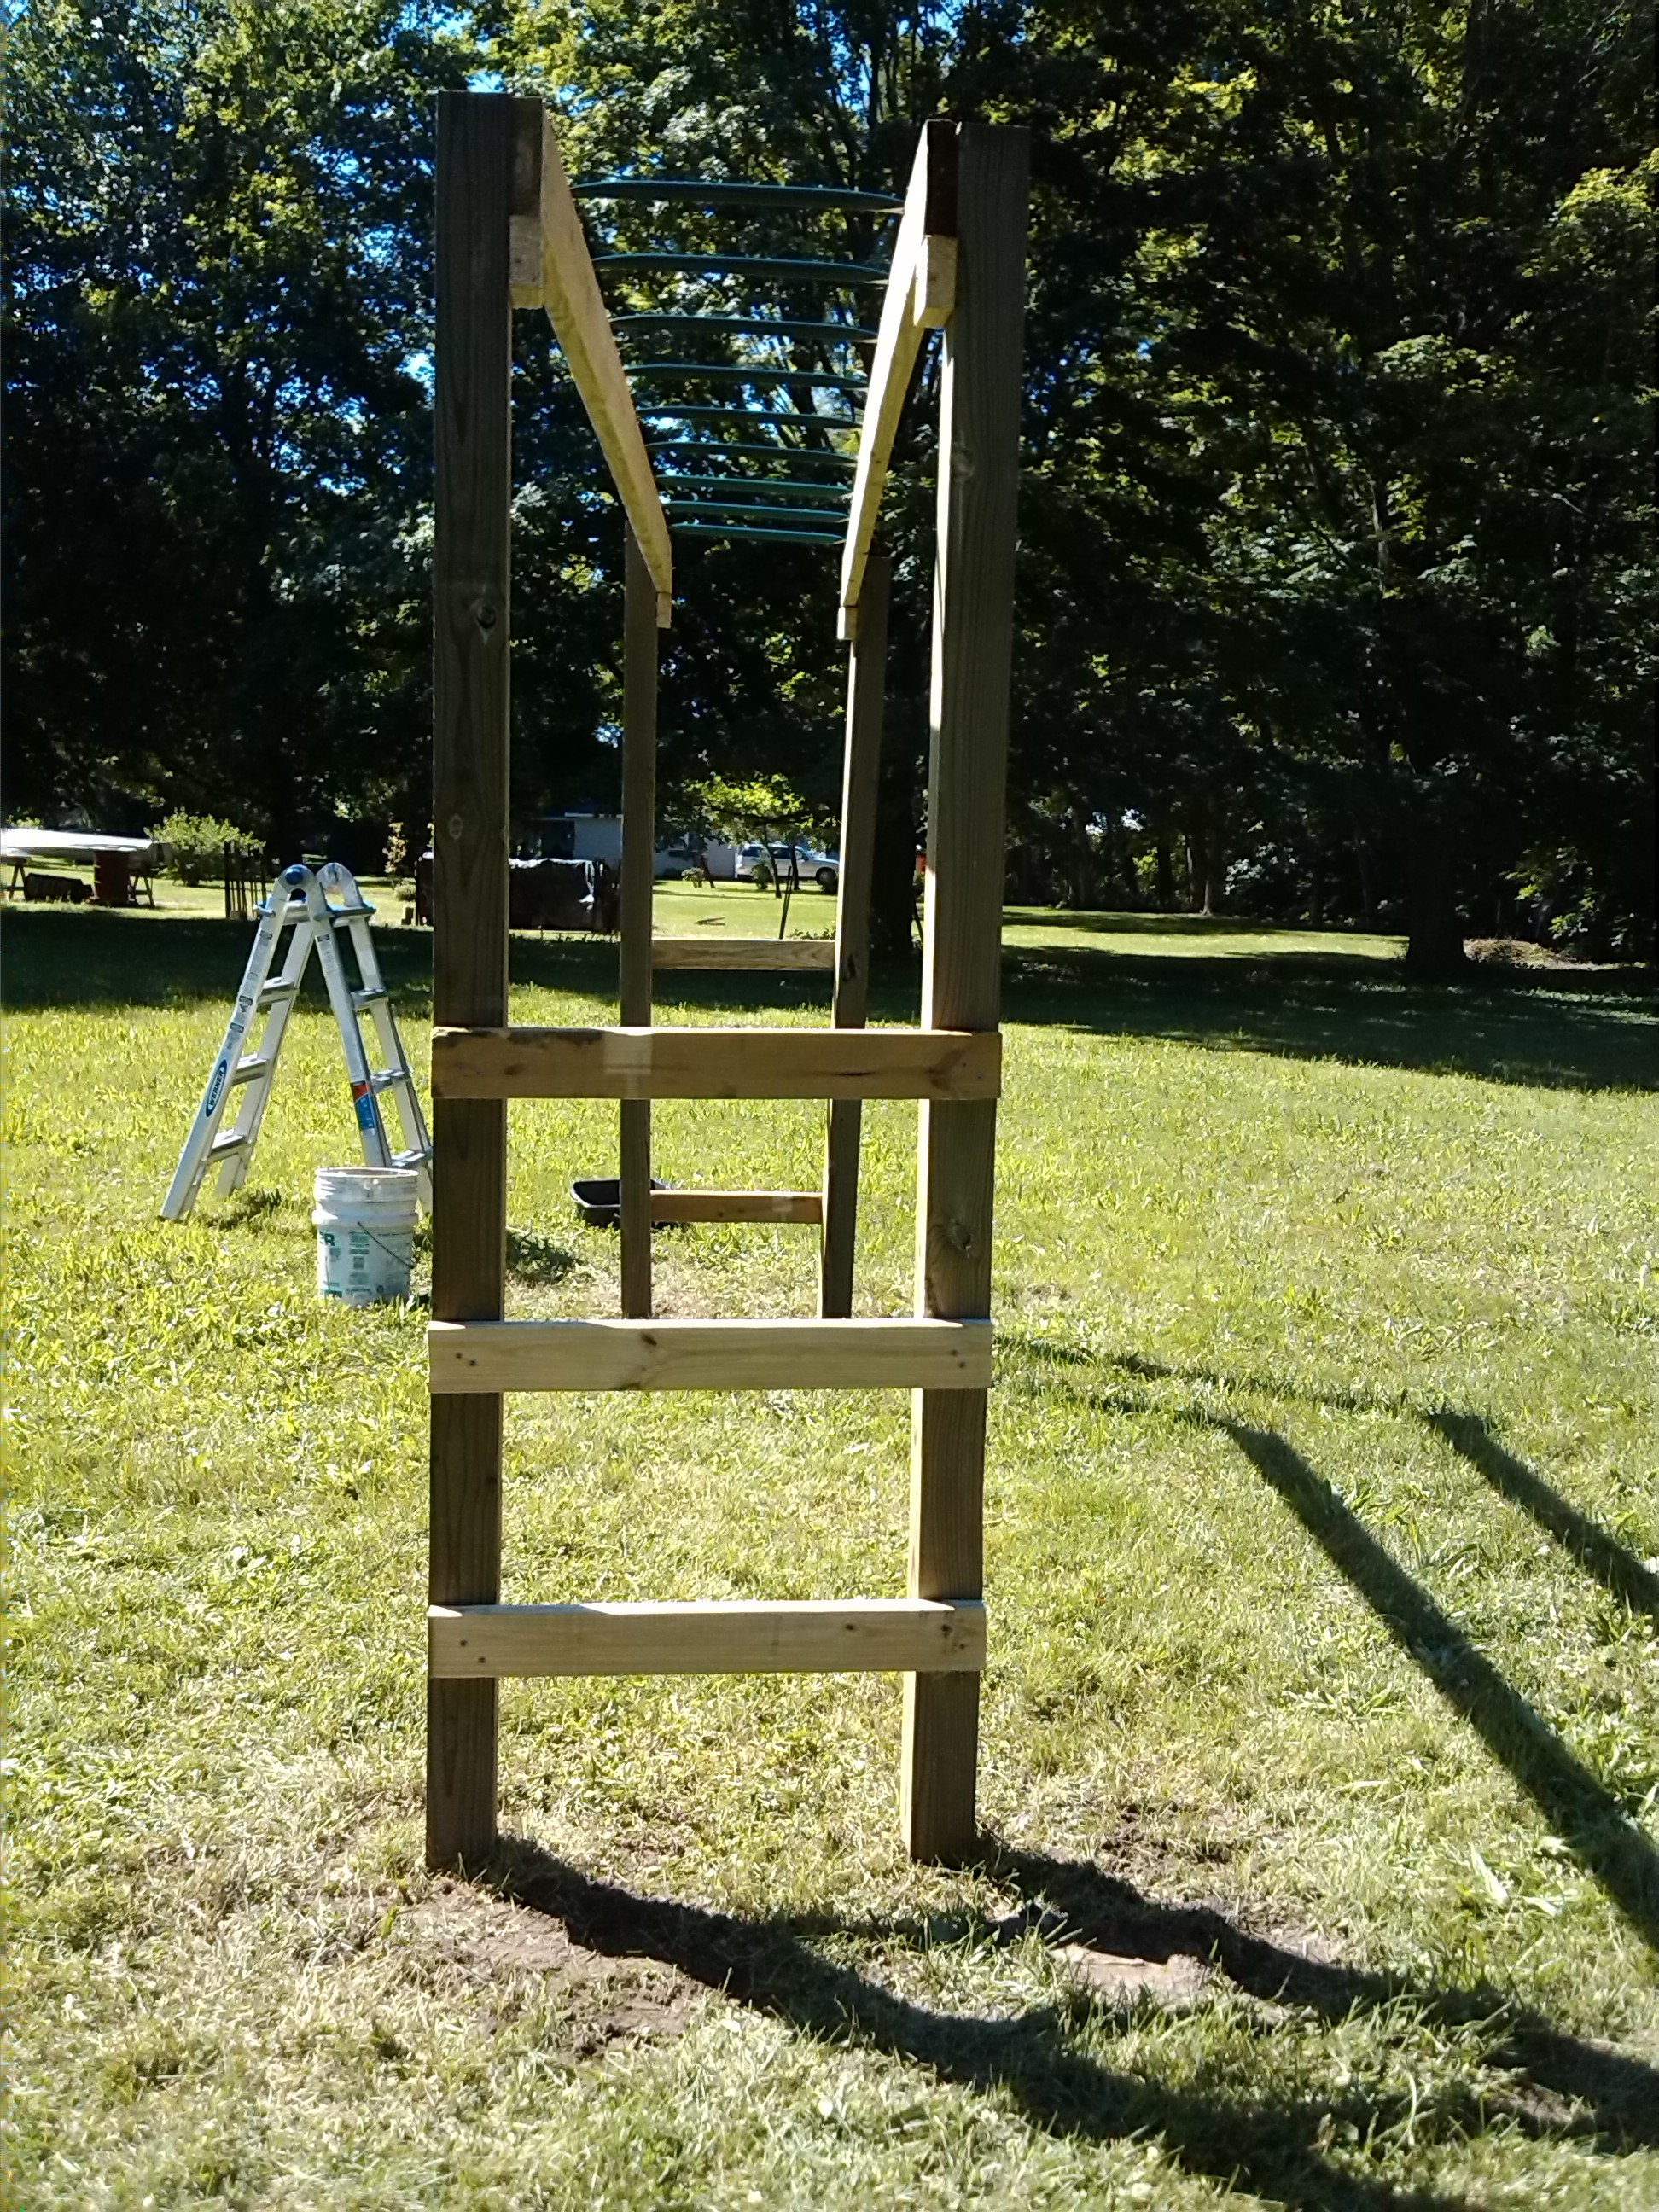 Stand Alone Monkey Bars For Backyard how to build monkey bars: my $100 backyard design -action economics